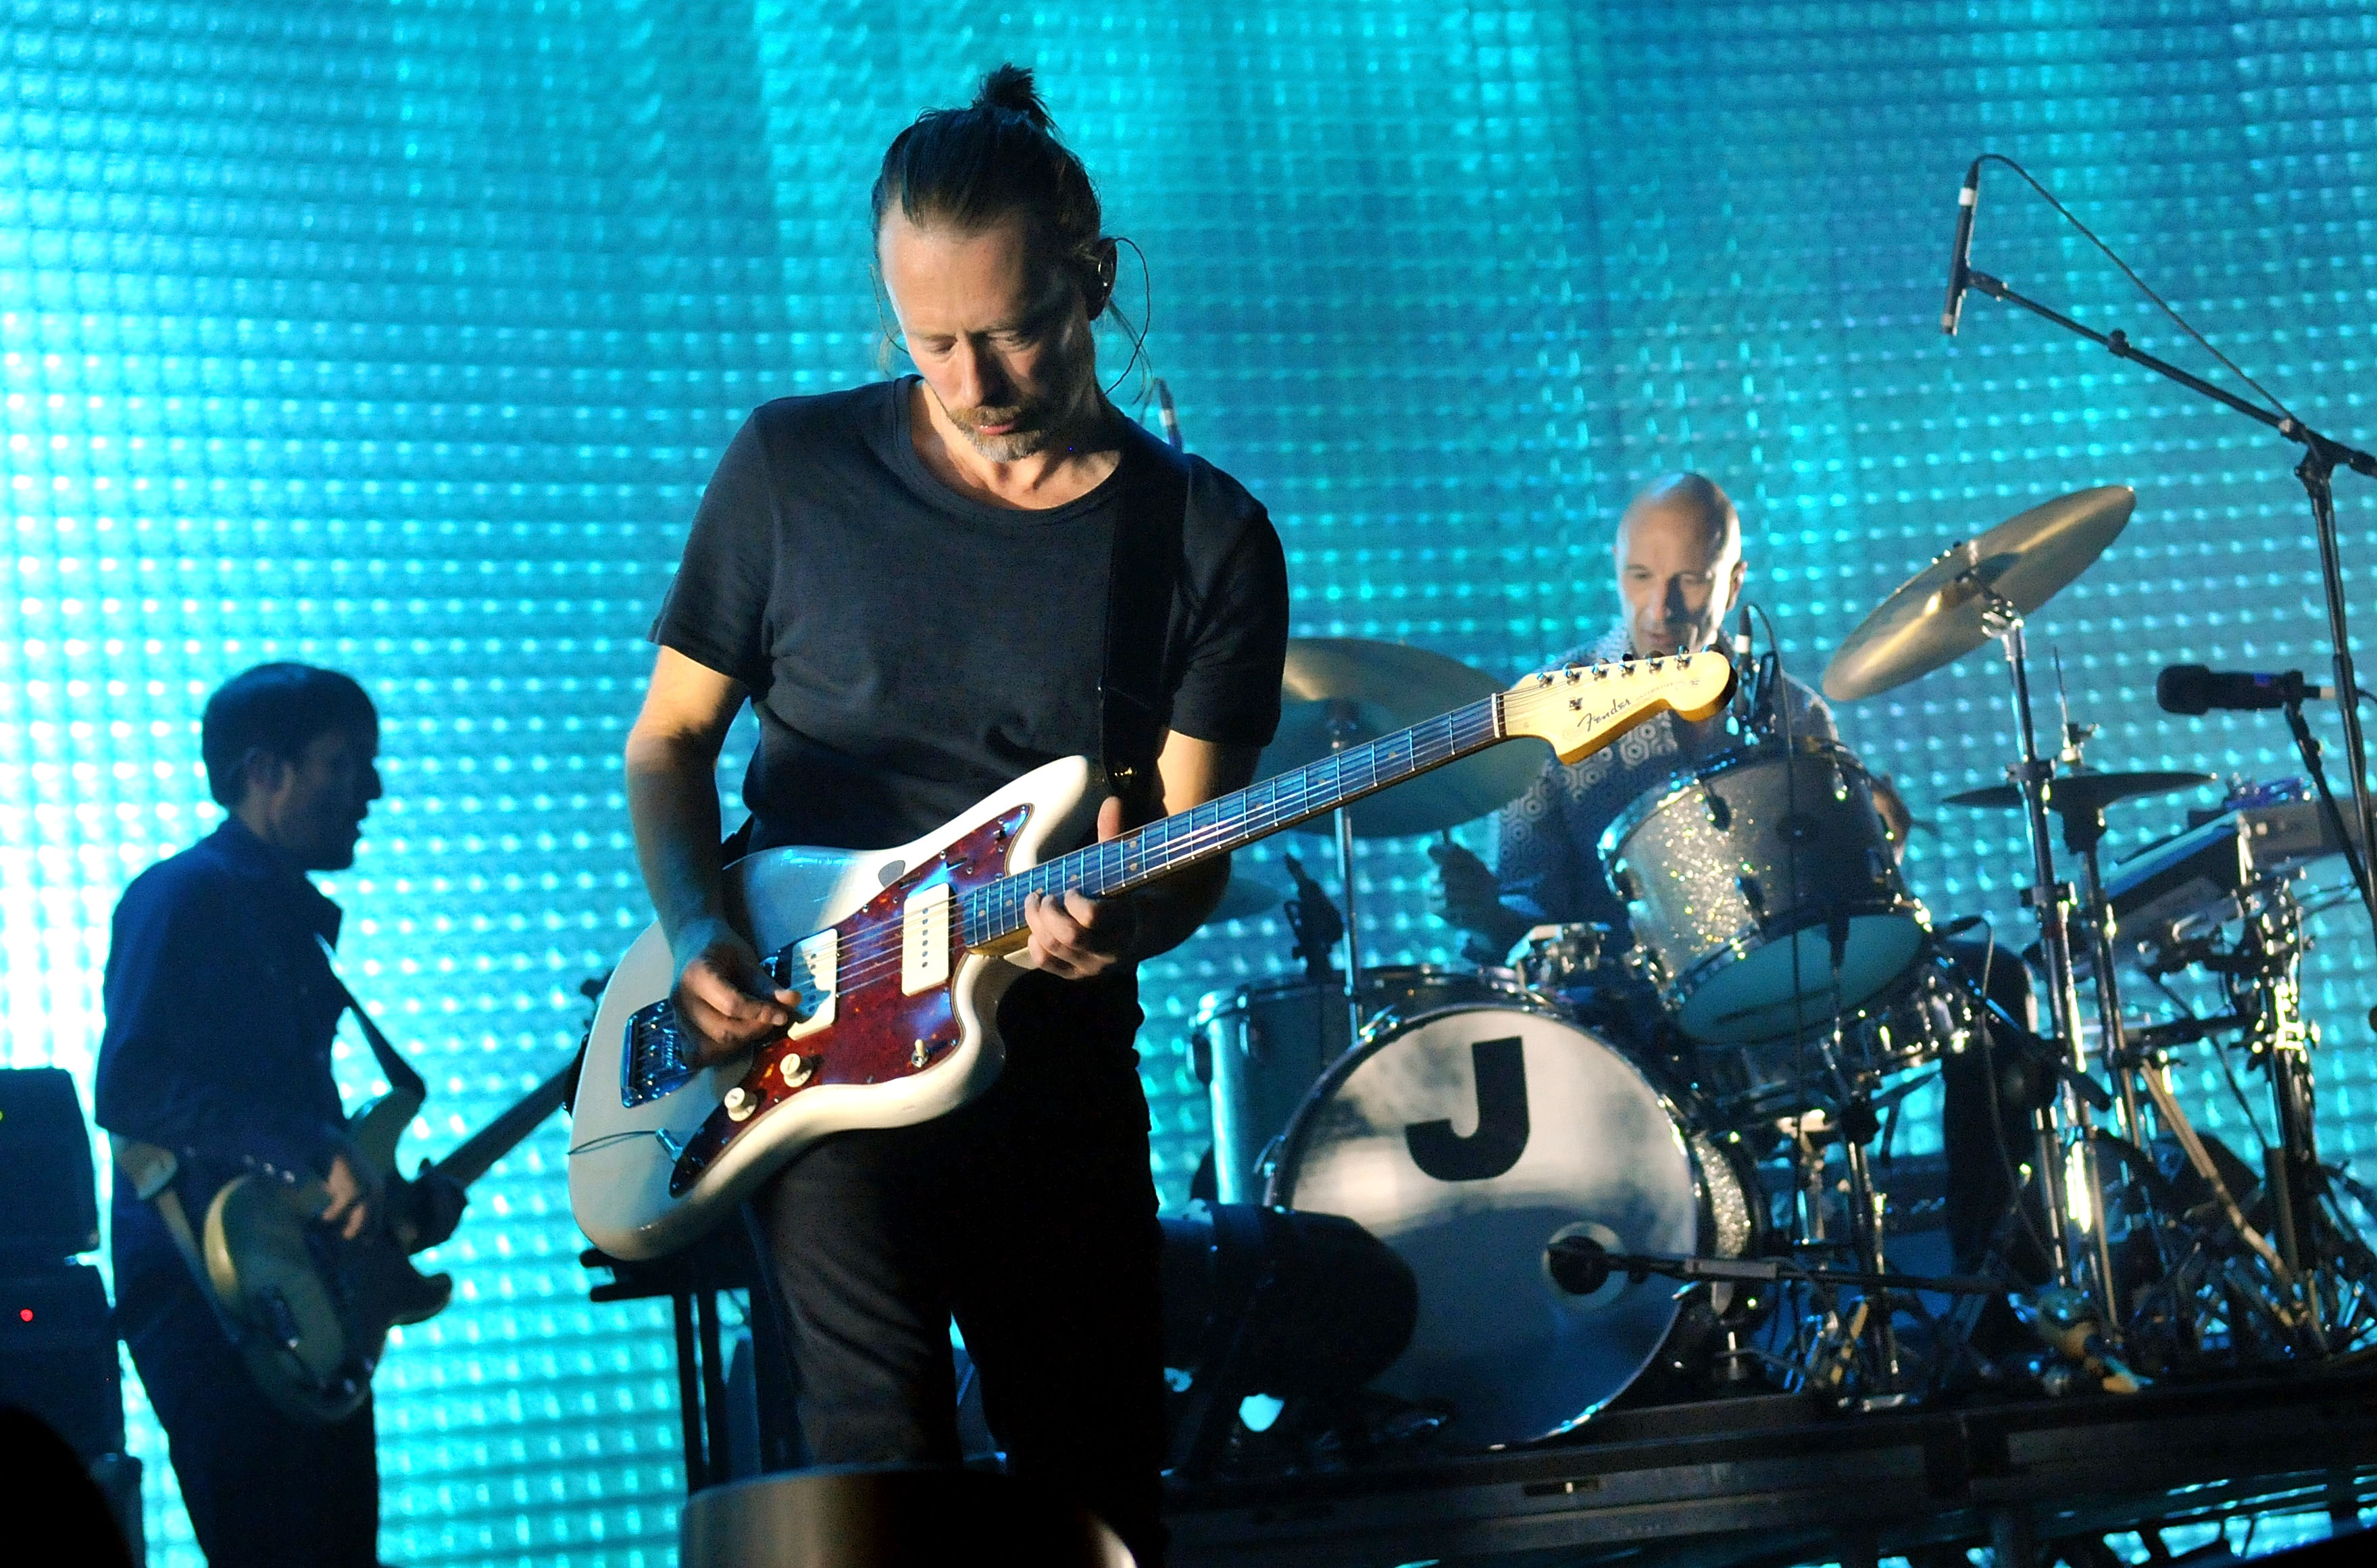 Radiohead Perform At The 02 Arena